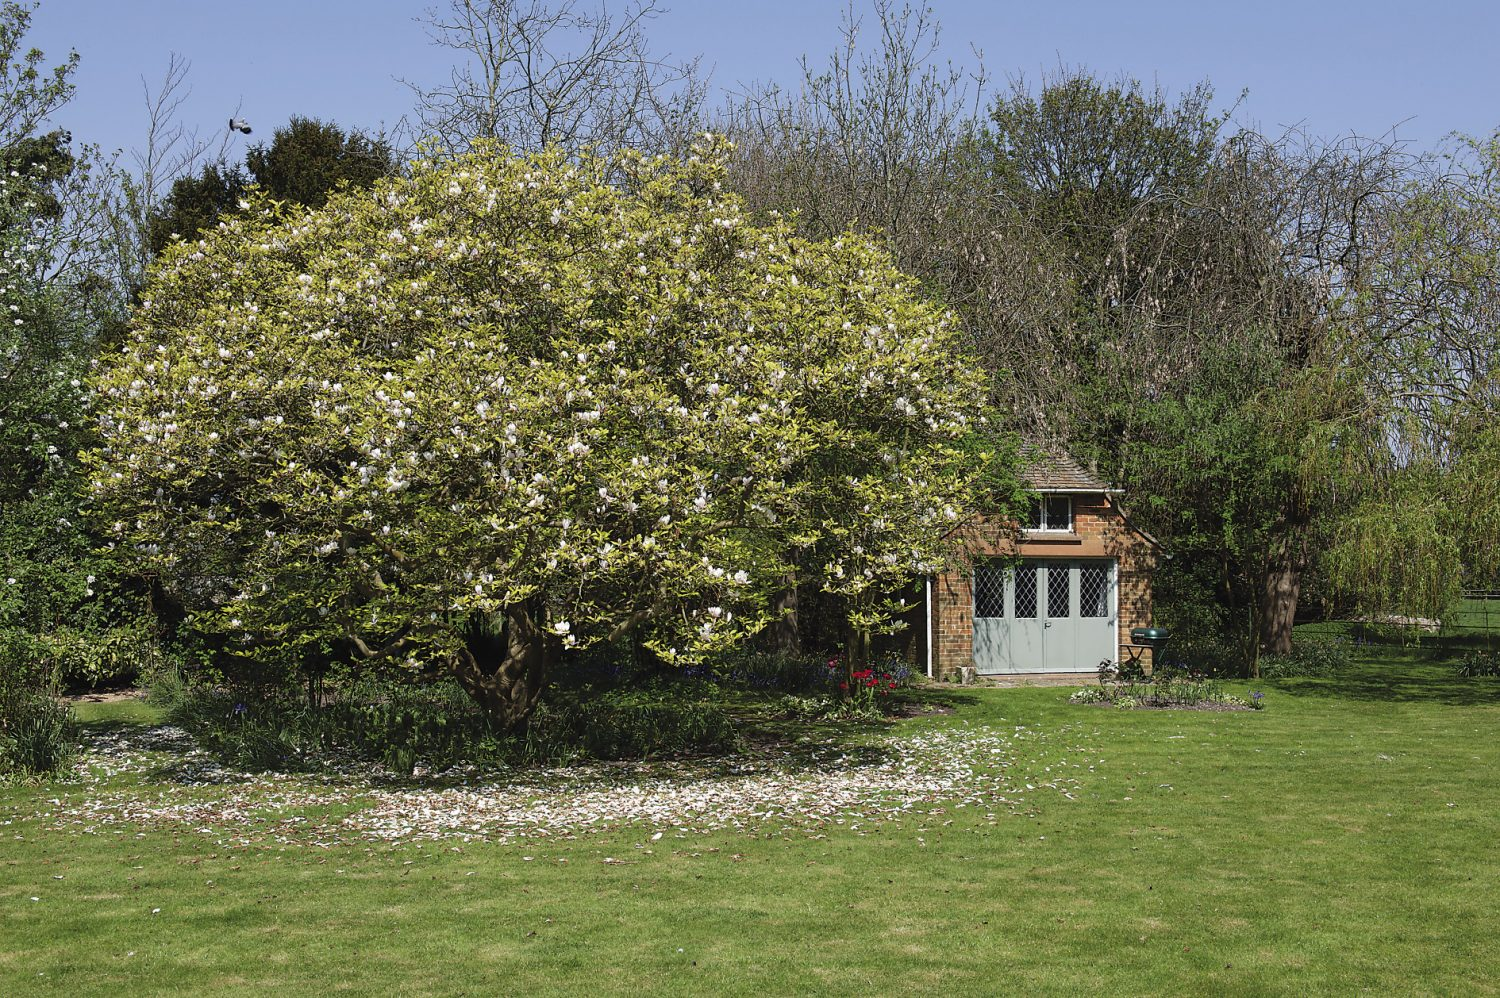 Across the lawn stands a brick summerhouse built in the 1950s